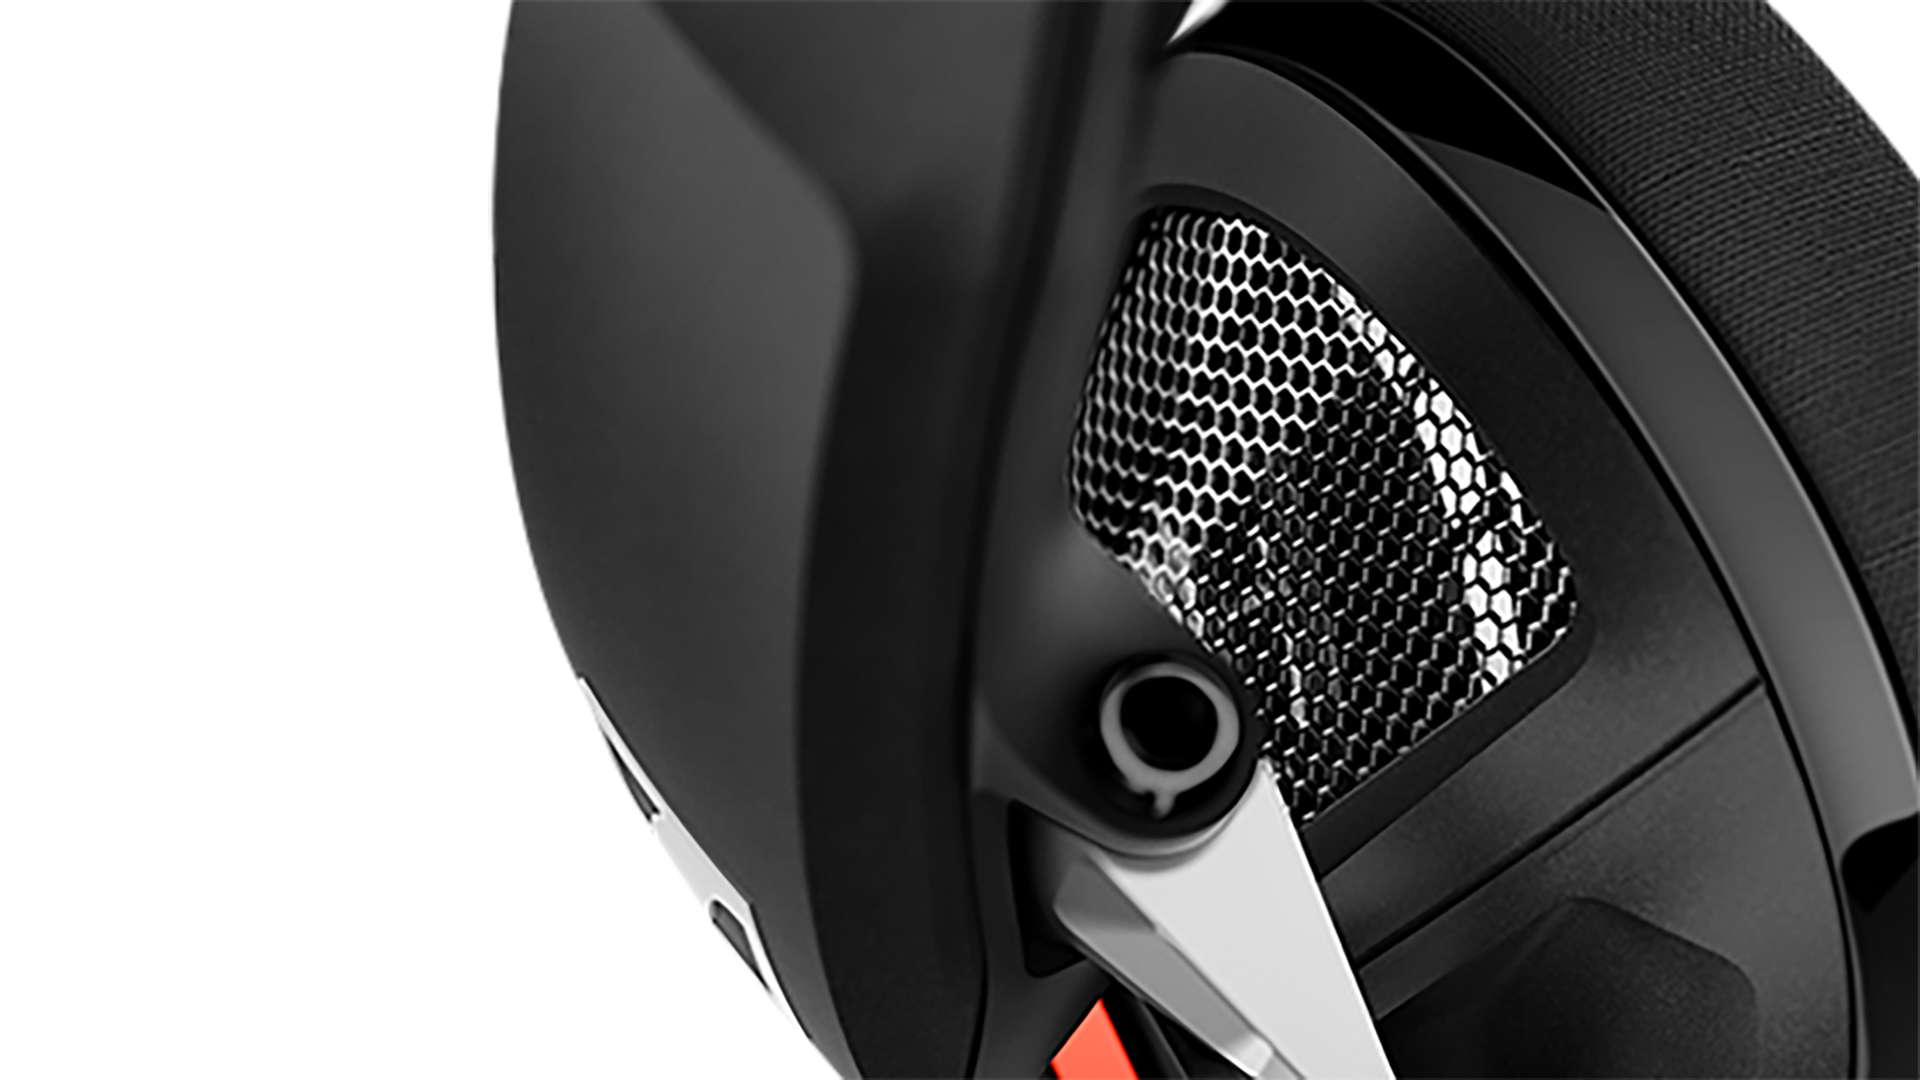 d69680b1041 Sennheiser GSP 500 review: a strong case for open-back gaming ...